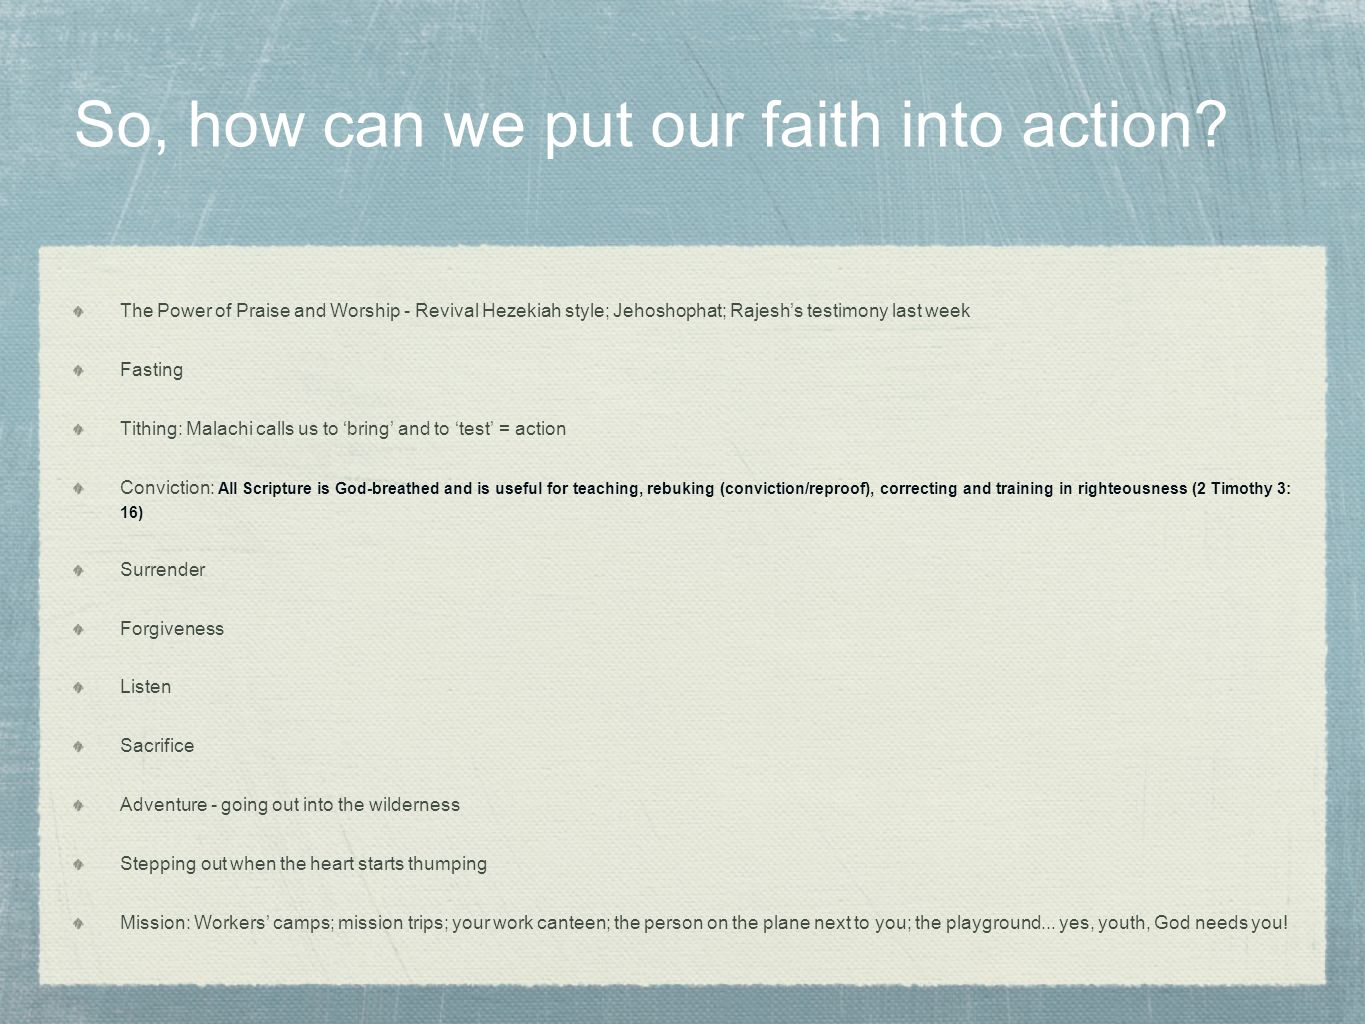 So, how can we put our faith into action